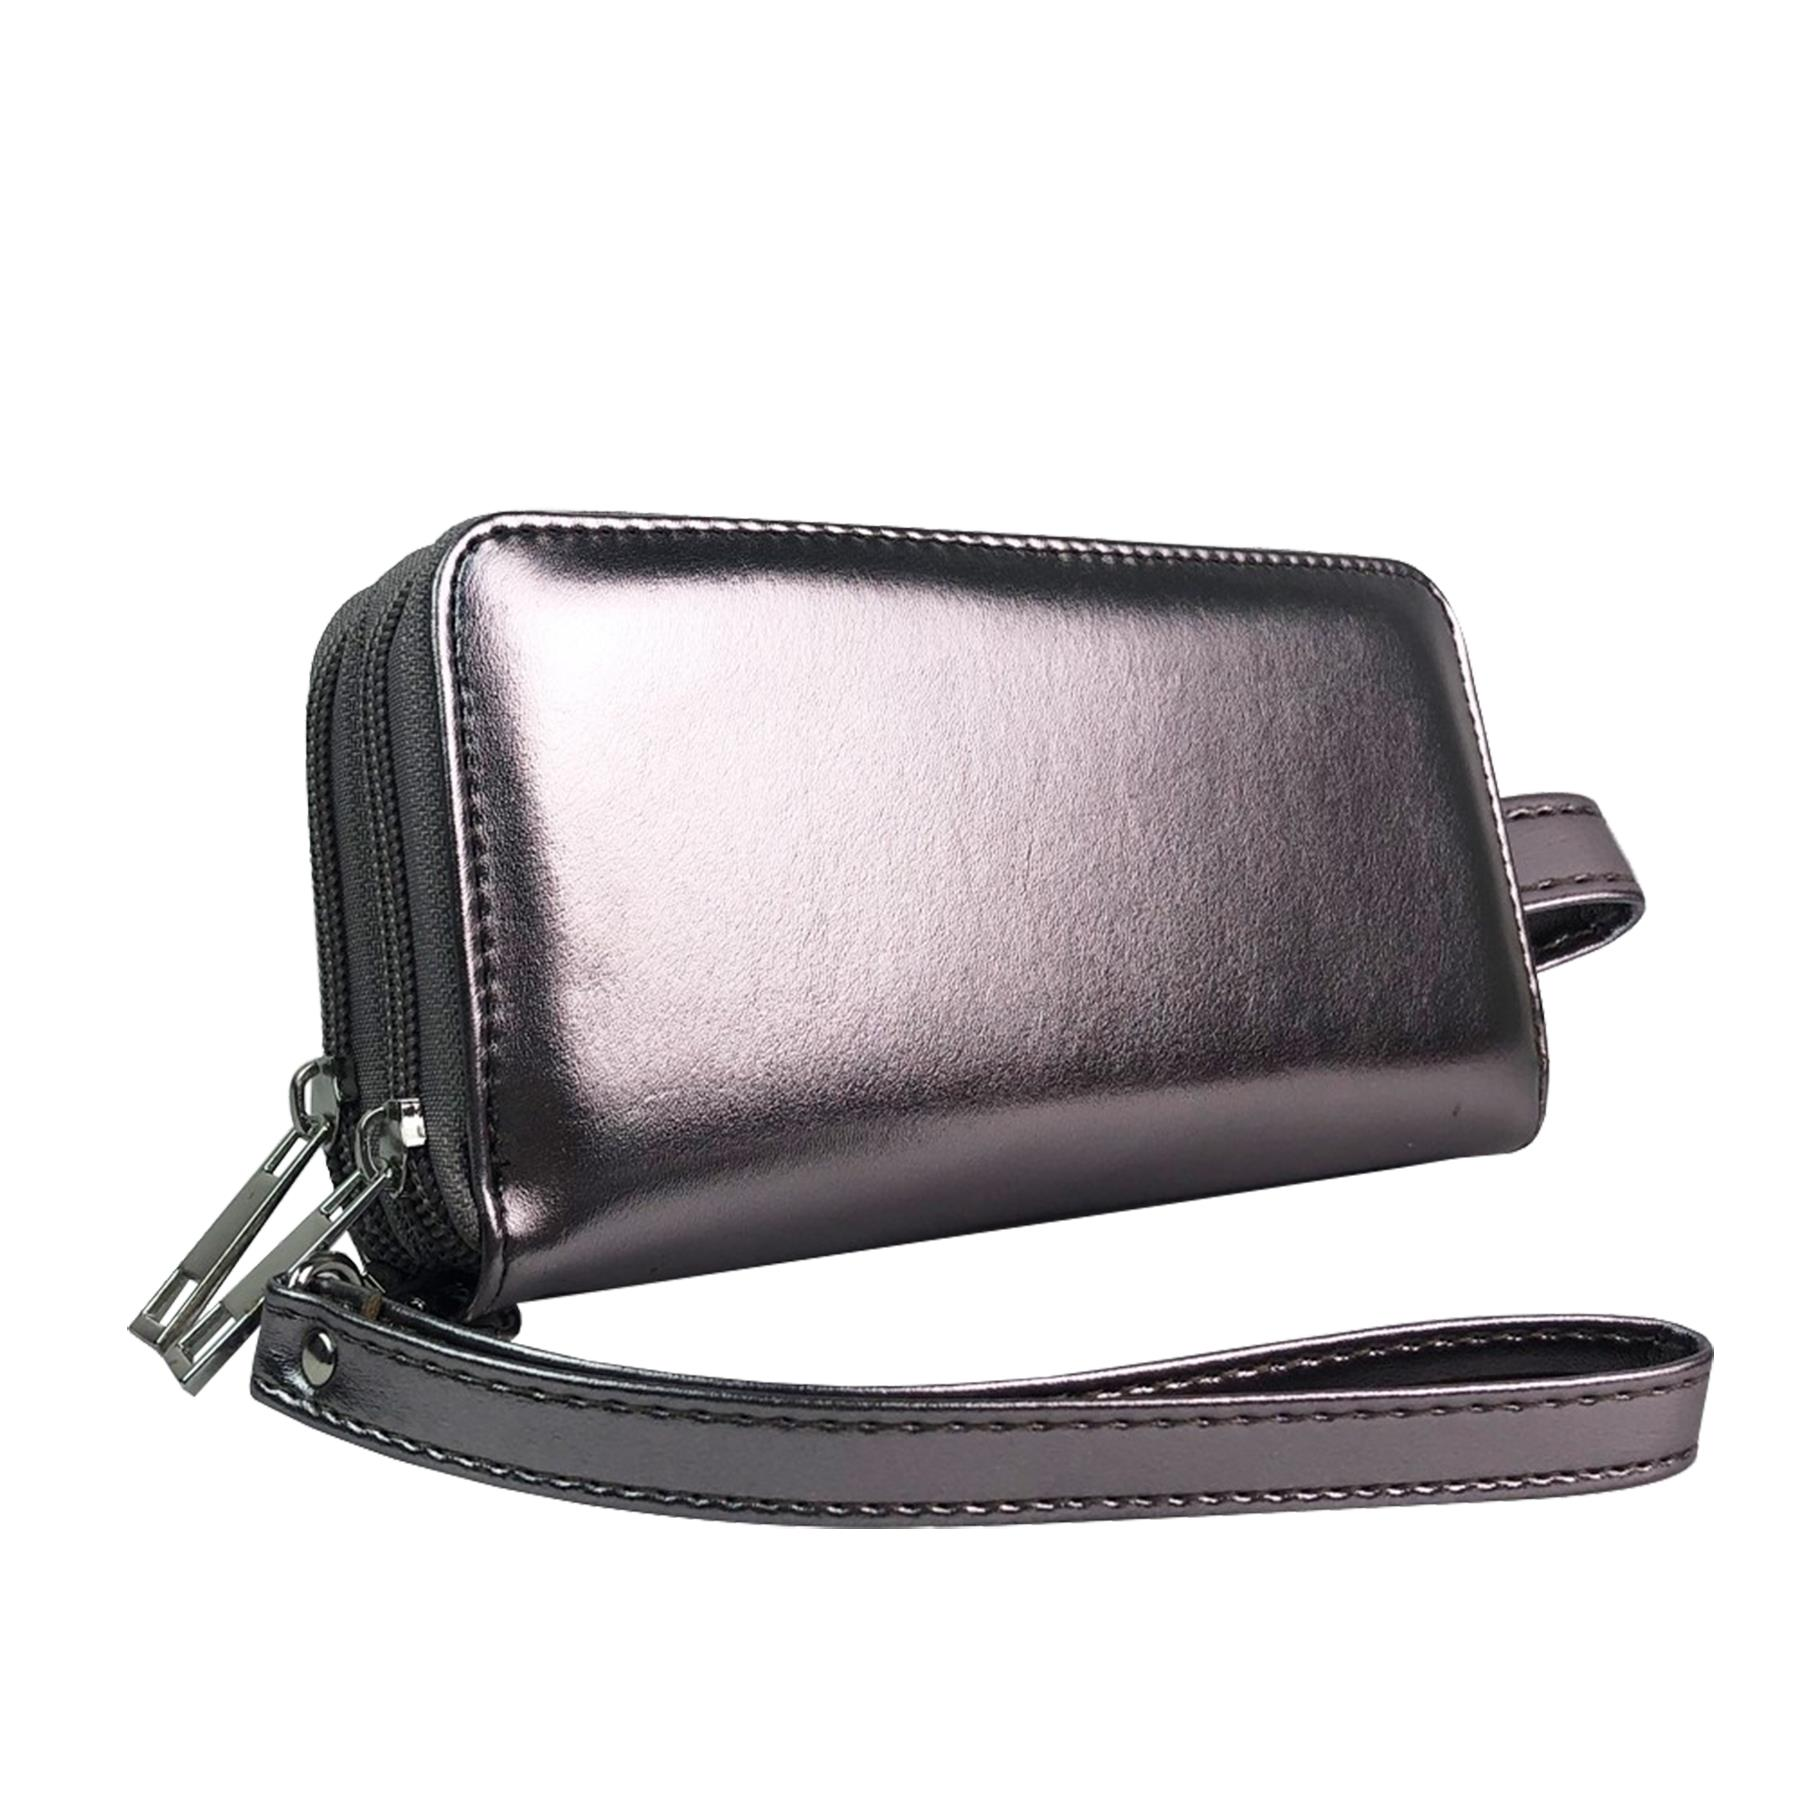 New-Ladies-Faux-Leather-Money-Organiser-Large-Wristlet-Purse-Wallet thumbnail 26